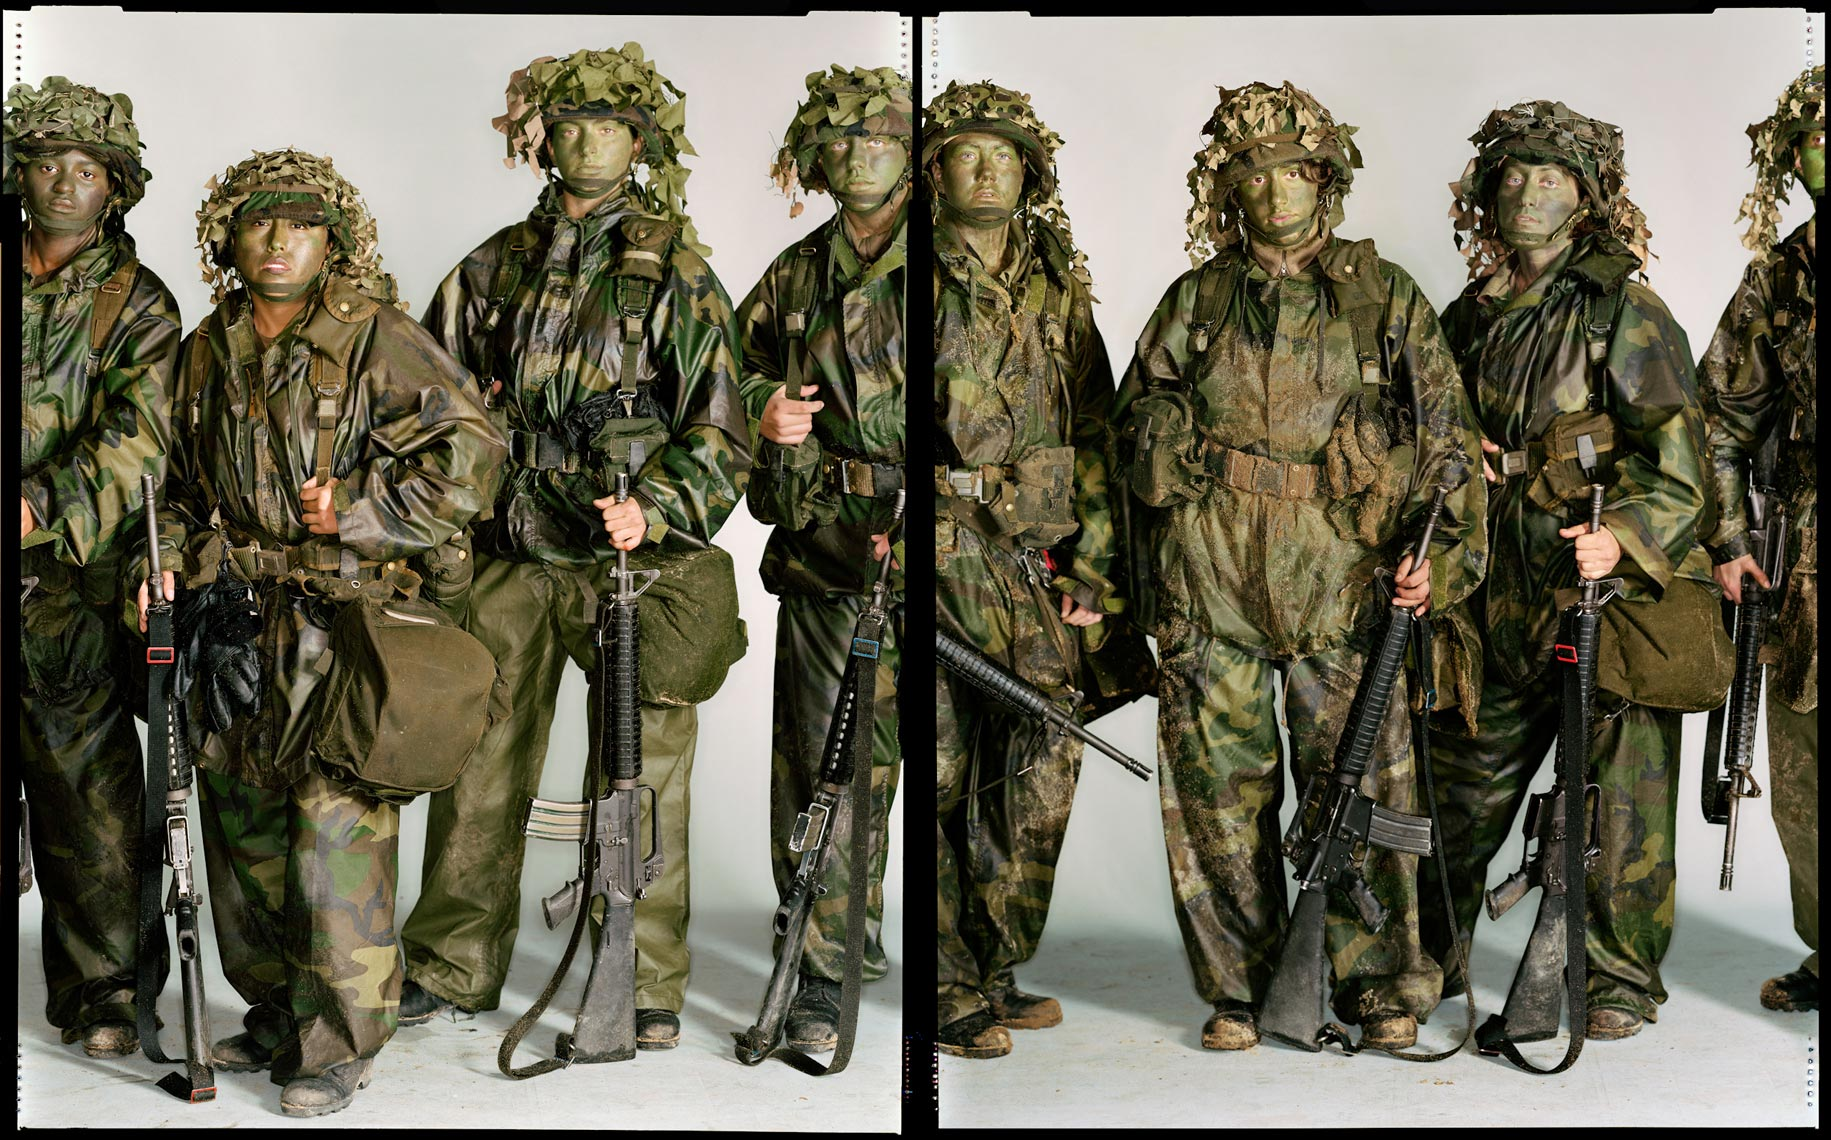 Female Soldiers - Fort Benning, GA - New York Times Magazine